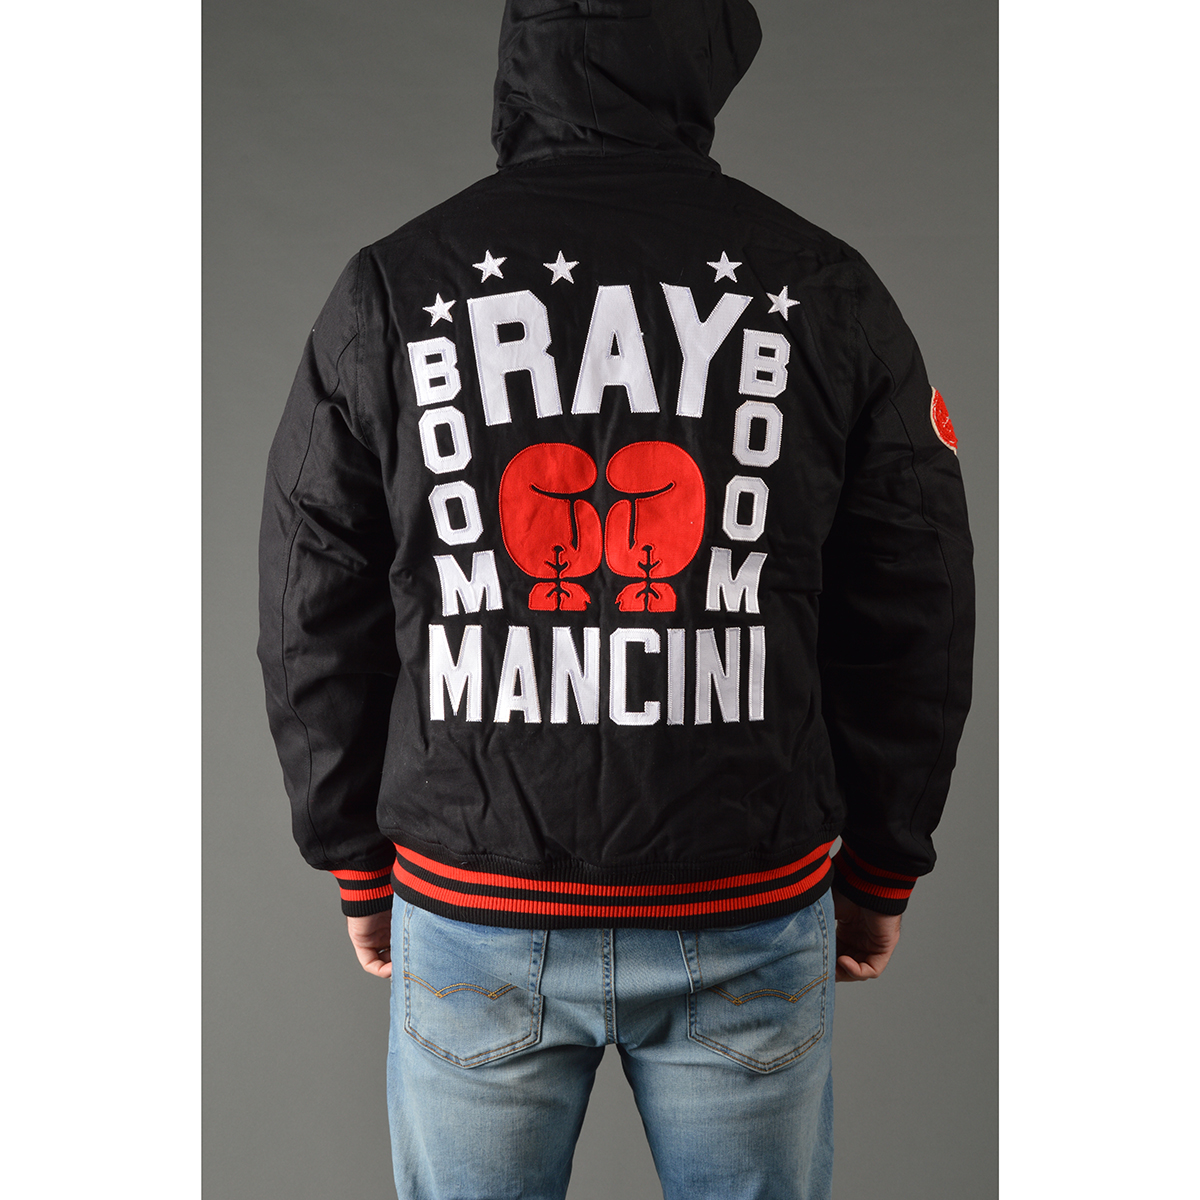 048348a29 Roots of Fight Ray Boom Boom Mancini Canvas Jacket - Large - Black Red